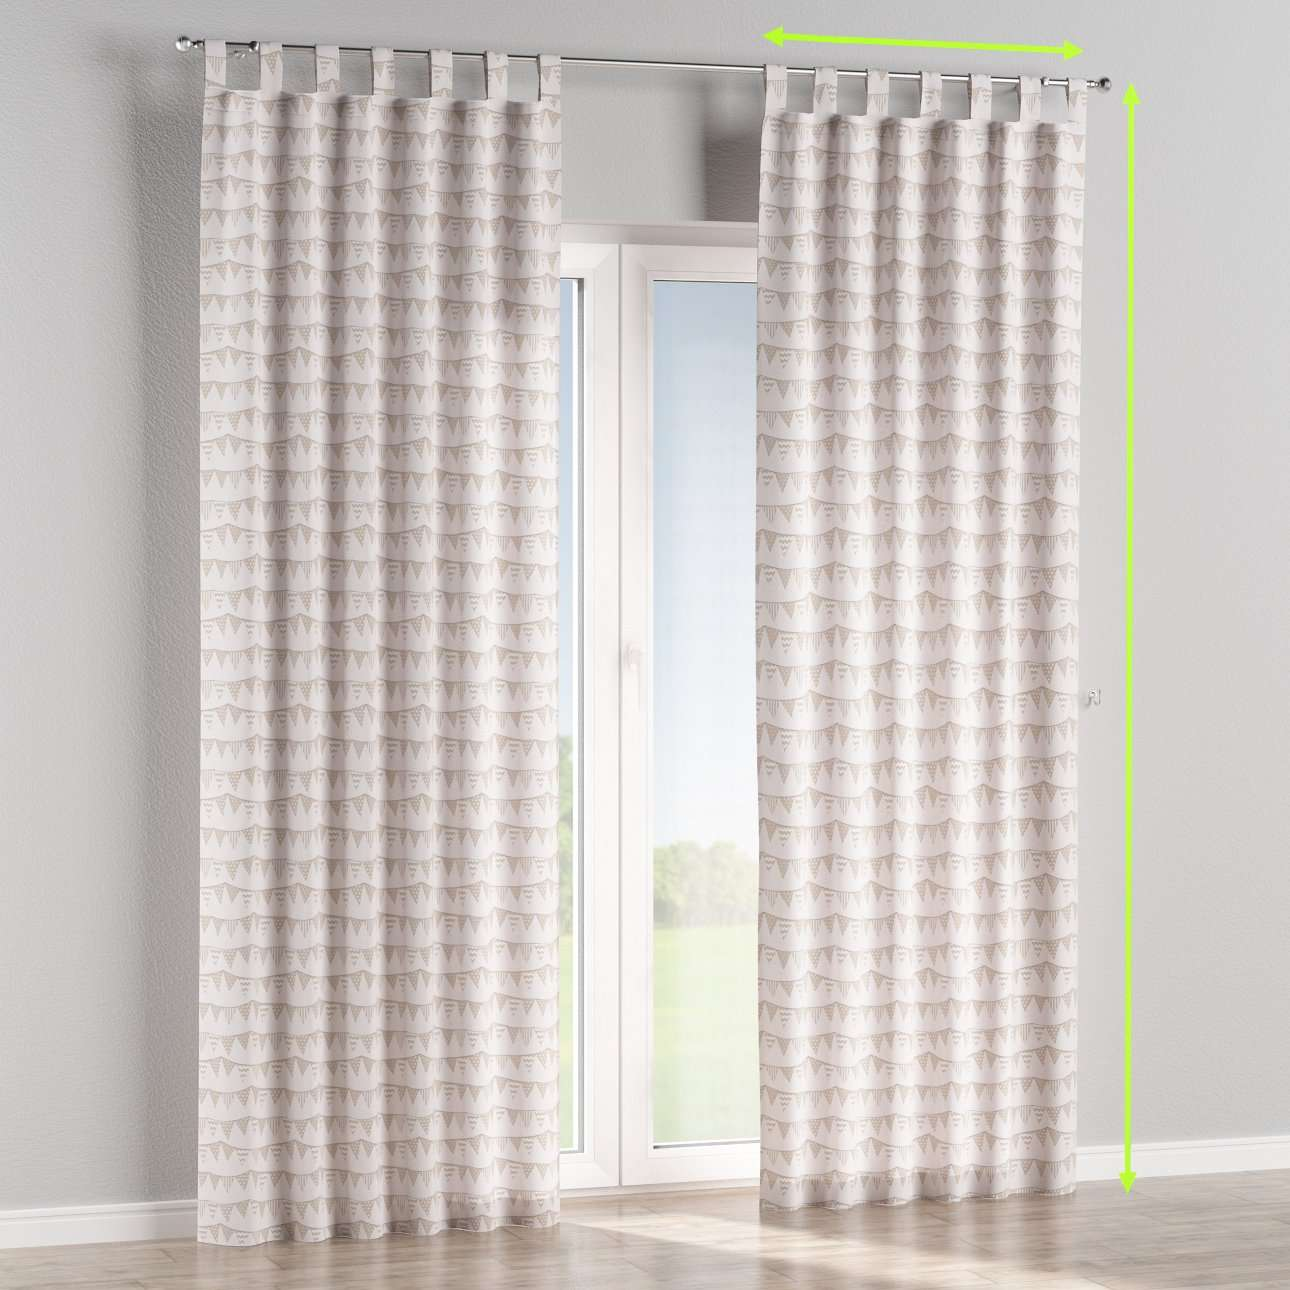 Tab top curtains in collection Marina, fabric: 140-65